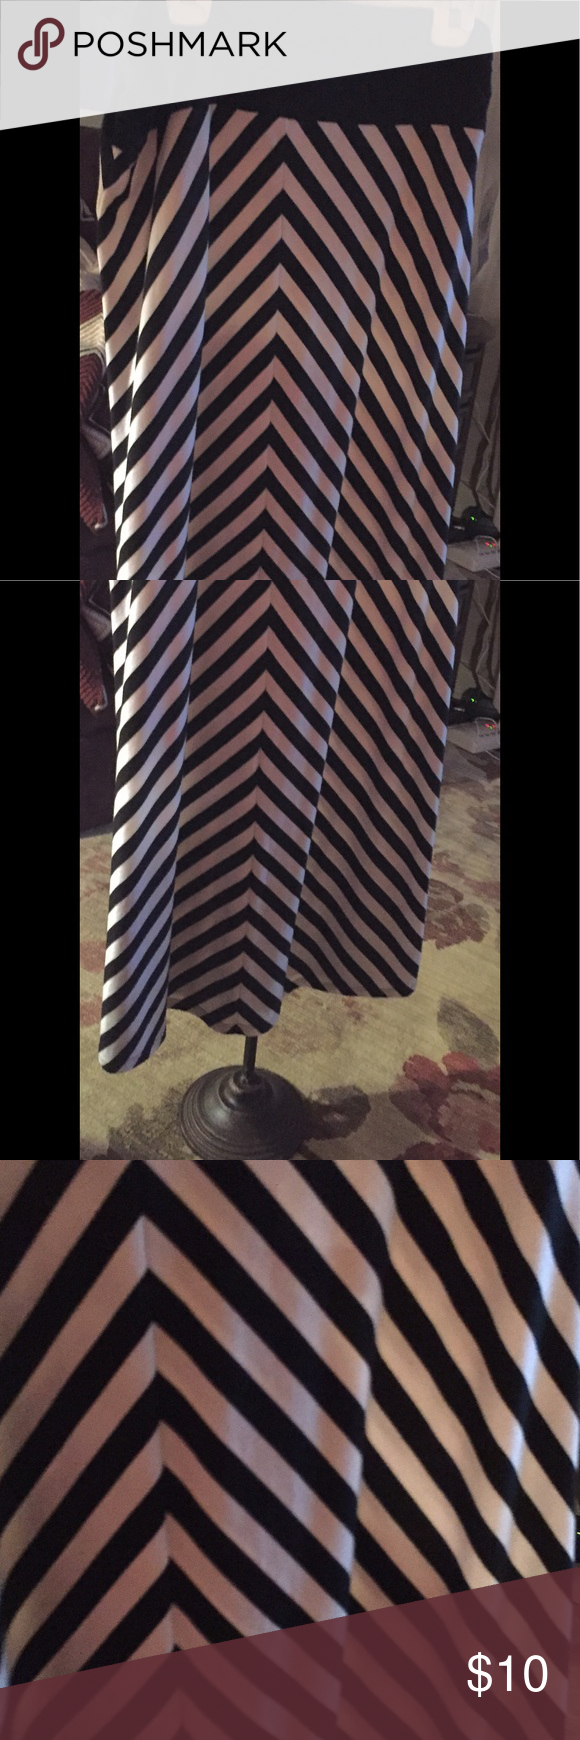 Chevron Maxi skirt Black/white maxi skirt with black elasticized waist band.  Excellent condition. No stains. Polyester/rayon/spandex.  XL (16-18) Faded Glory Skirts Maxi